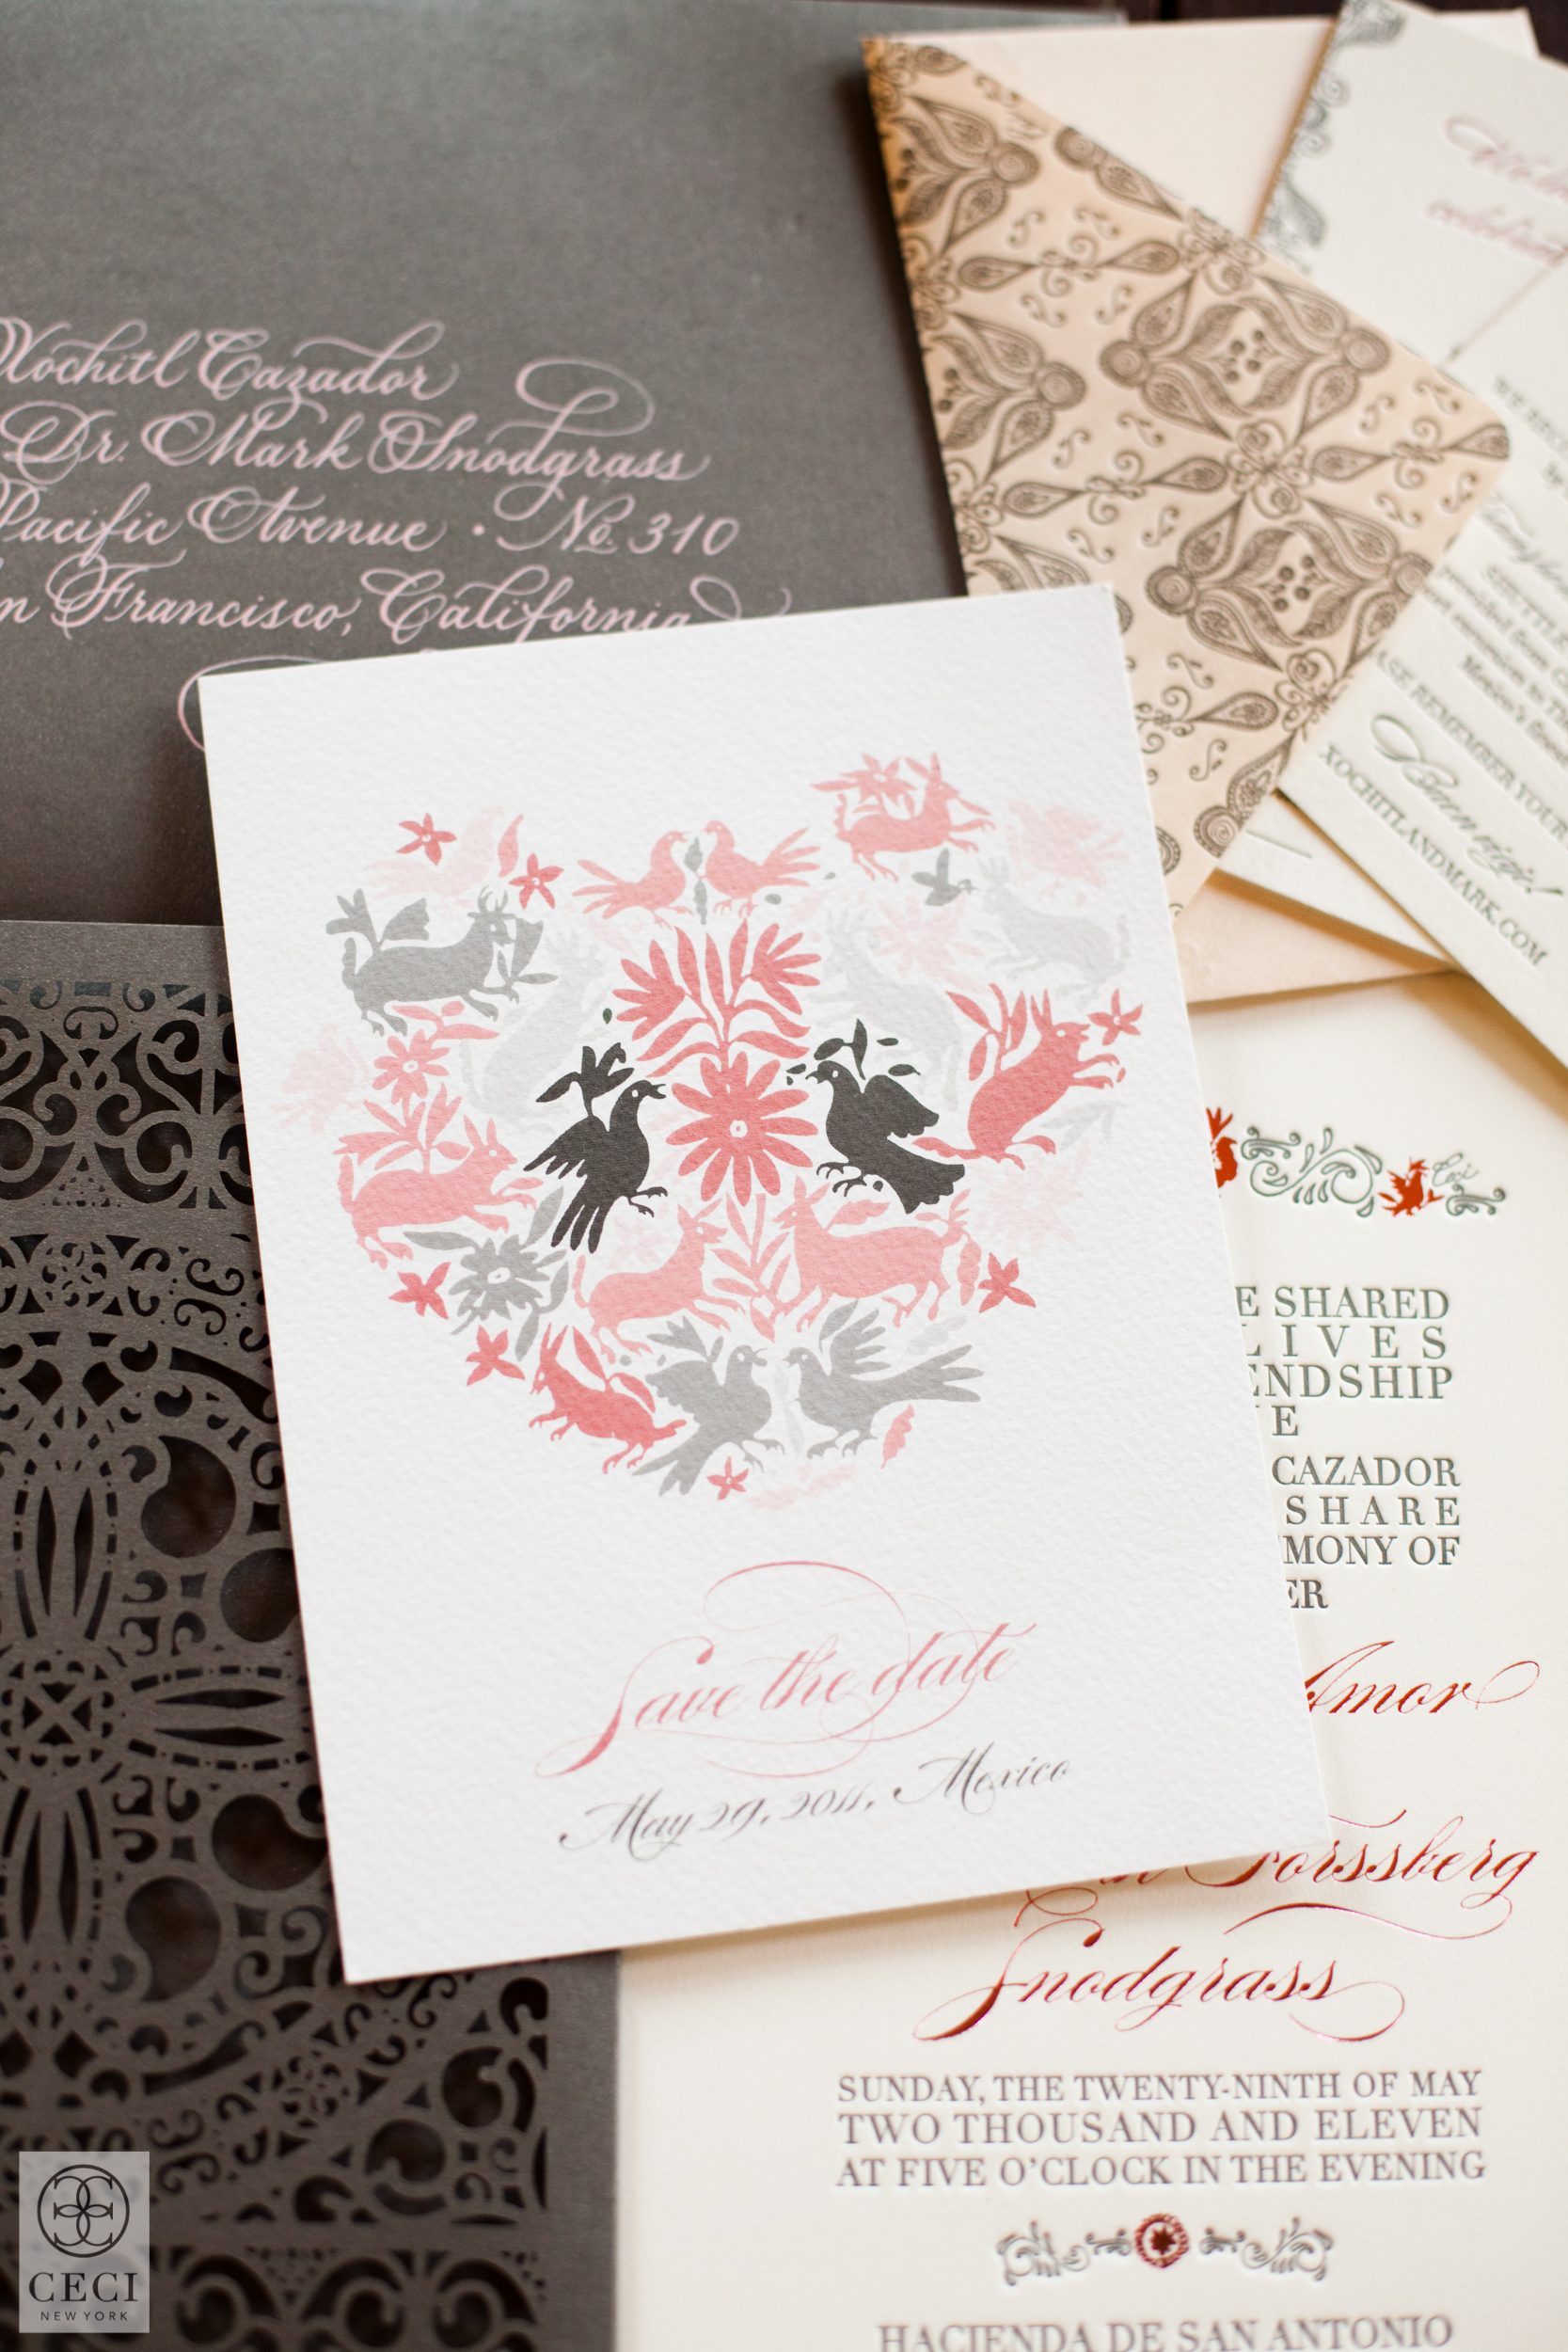 Ceci_New_York_Custom_Luxury_Wedding_LaserCut_Stationery_Personalized_Couture_Foil_Stamping_Mexico_Otomi_Chic_-5.jpg